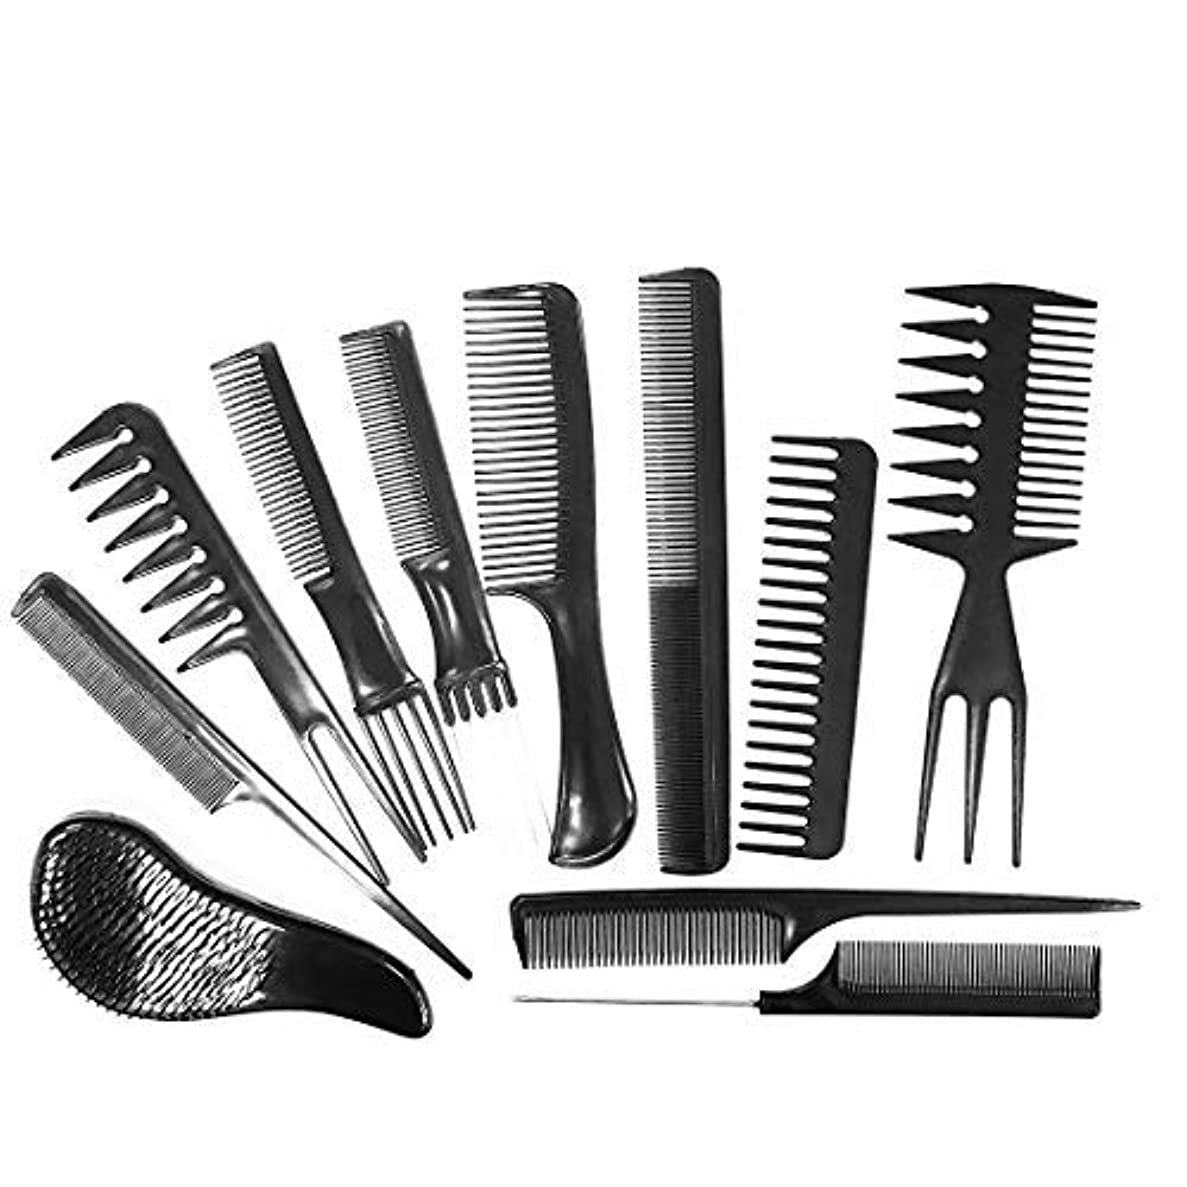 ロールタッチインタビューDaimay Professional Hair Styling Comb Set Hair Styling Clips Salon Hair Styling Barbers Comb Set Variety Pack...